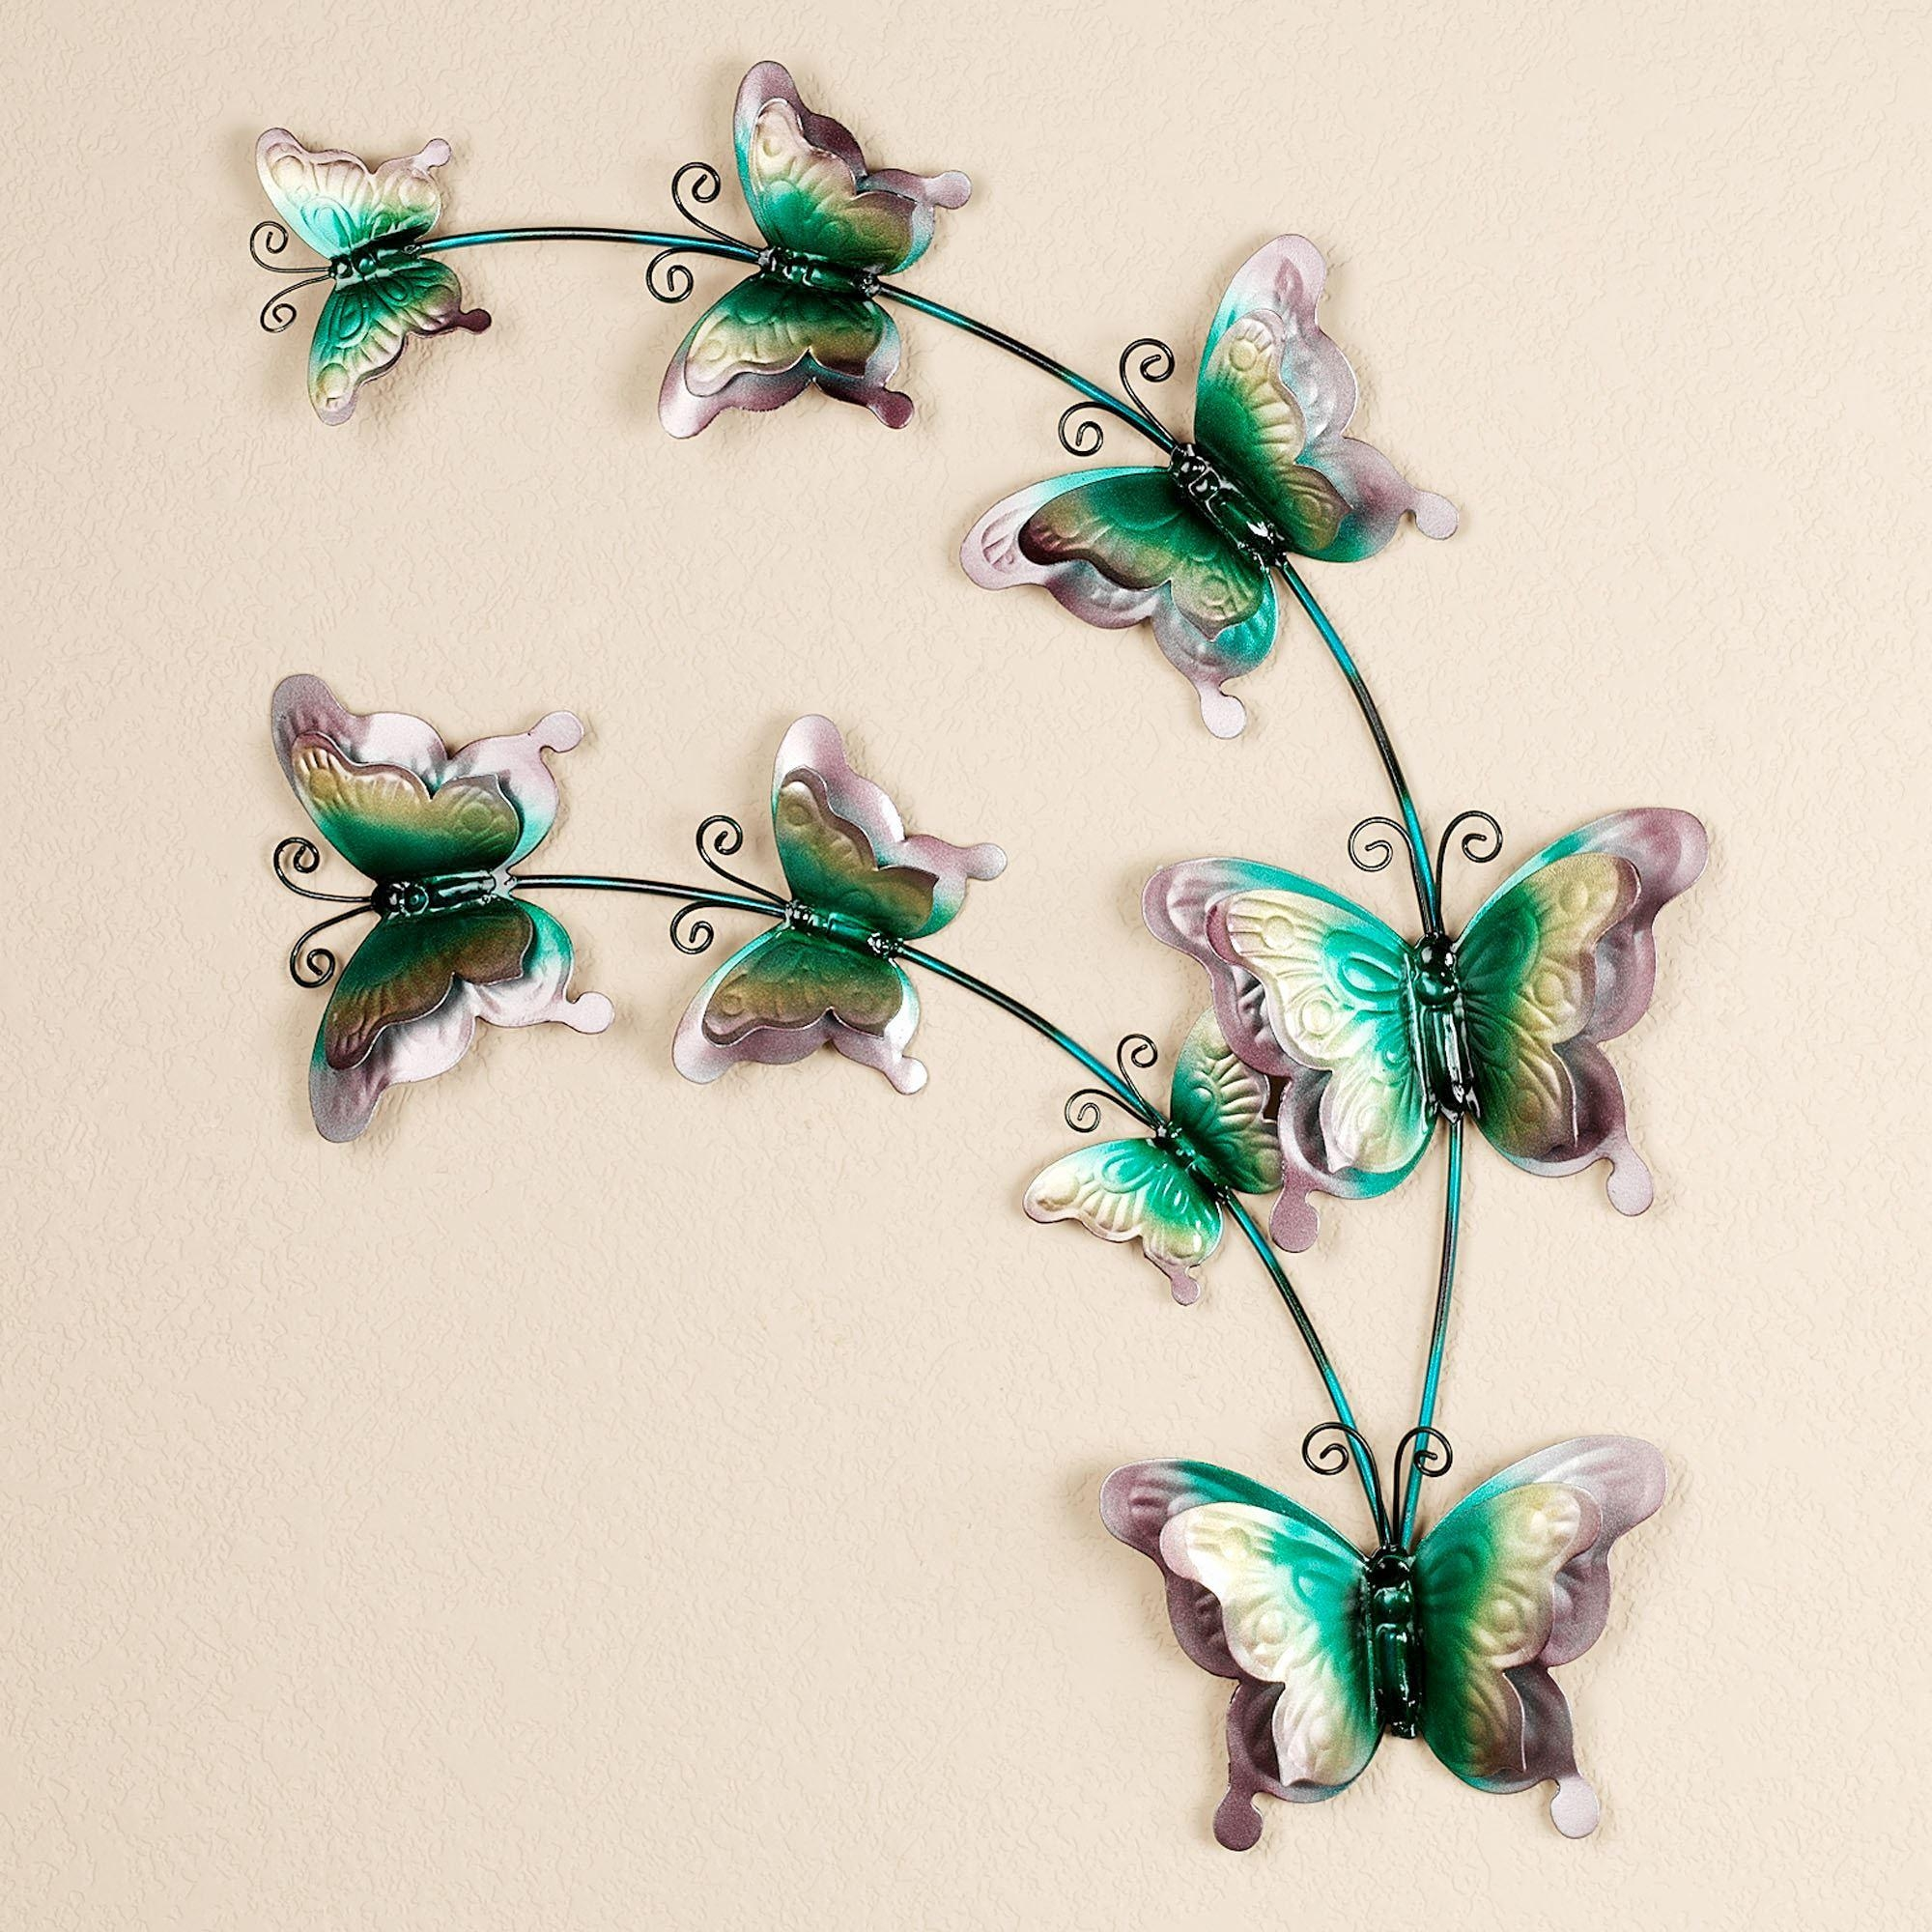 Amazing Metal Butterfly Wall Art 2000 X 2000 609 Kb Jpeg, Metal Pertaining To Metal Wall Art For Bathroom (Image 2 of 20)